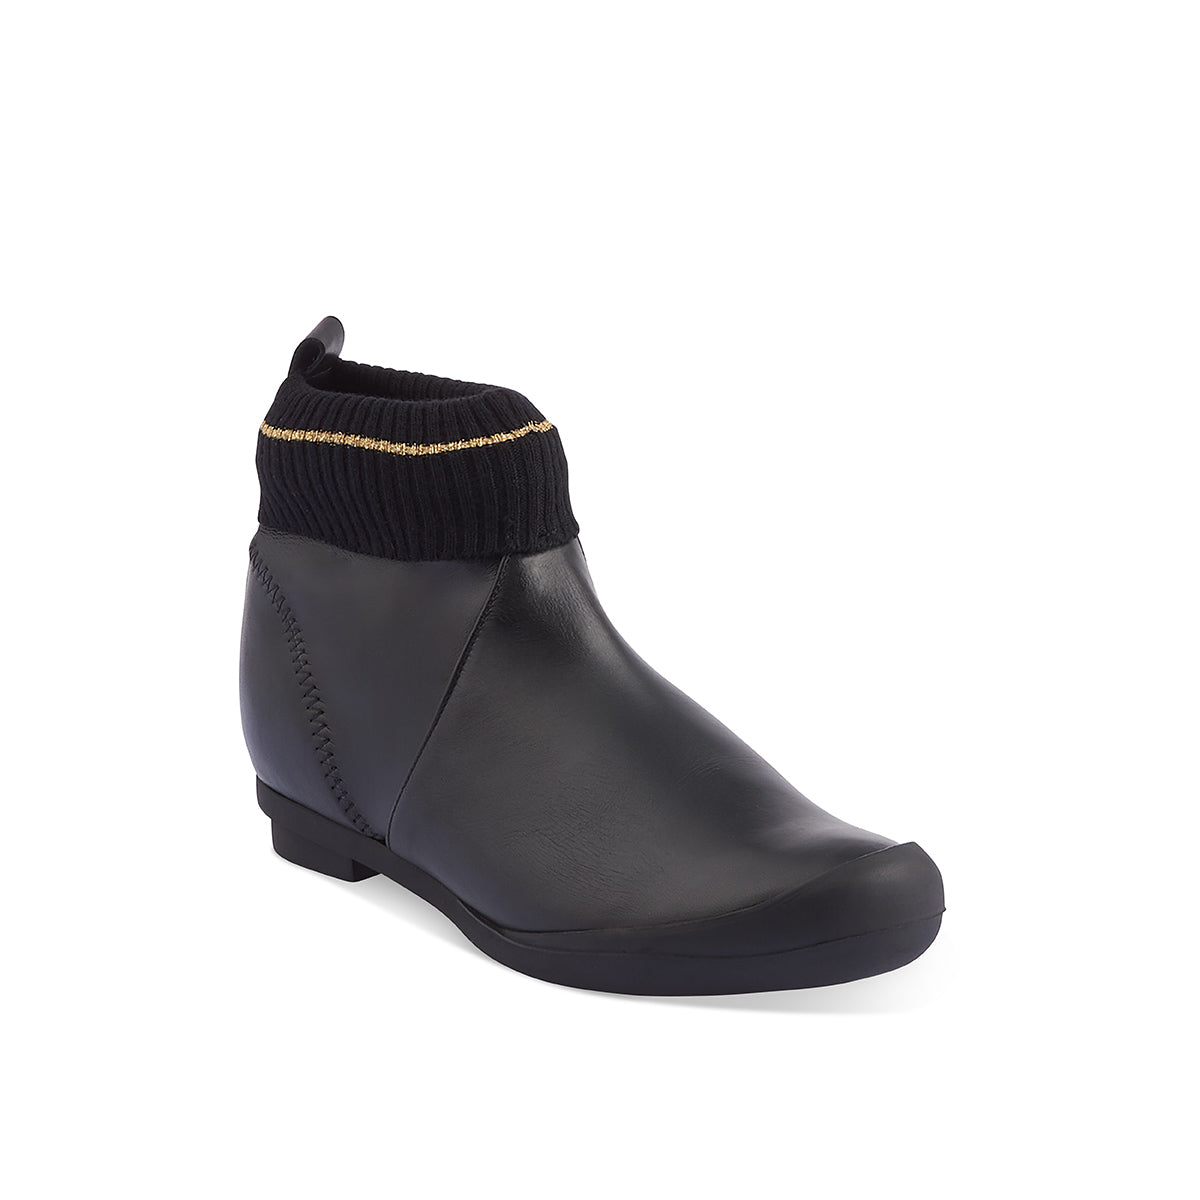 A playful combination of - yep - sock and shoe, Tracey Neuls' adventurous spirit is on display with this amazingly comfy low ankle boot. The slip-on design is made easy with a high-quality 'pleather' back section and the fun sock detail is elevated with a fine line of gold around the ankle.